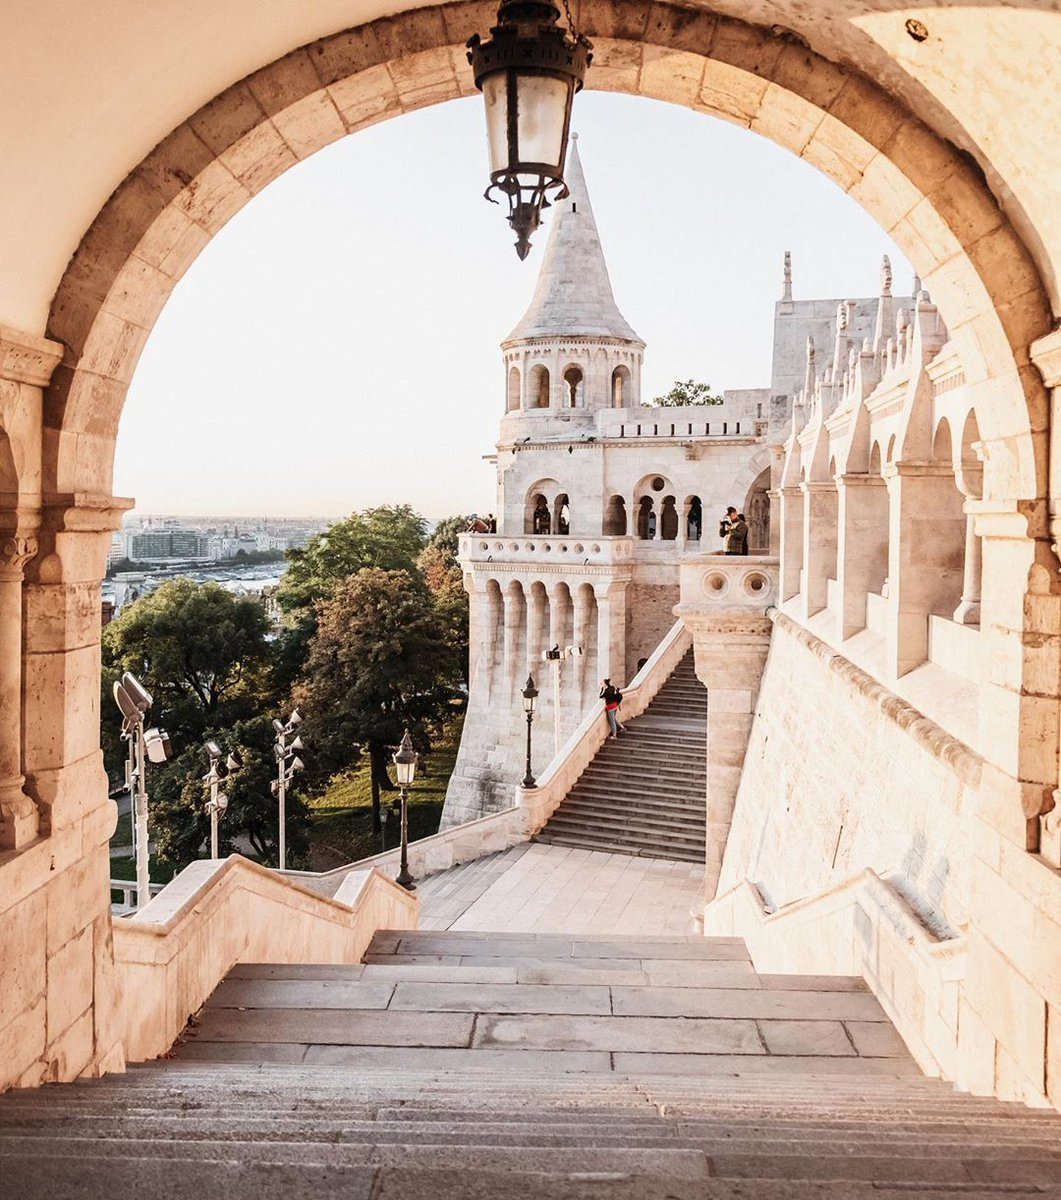 Every day brings us one step closer to summer. We can't wait to hike up to the Buda castle again for the most amazing view of the city. What #Budapest views are you dreaming of? #DreamwithFS https://t.co/5NDe6Aofiq